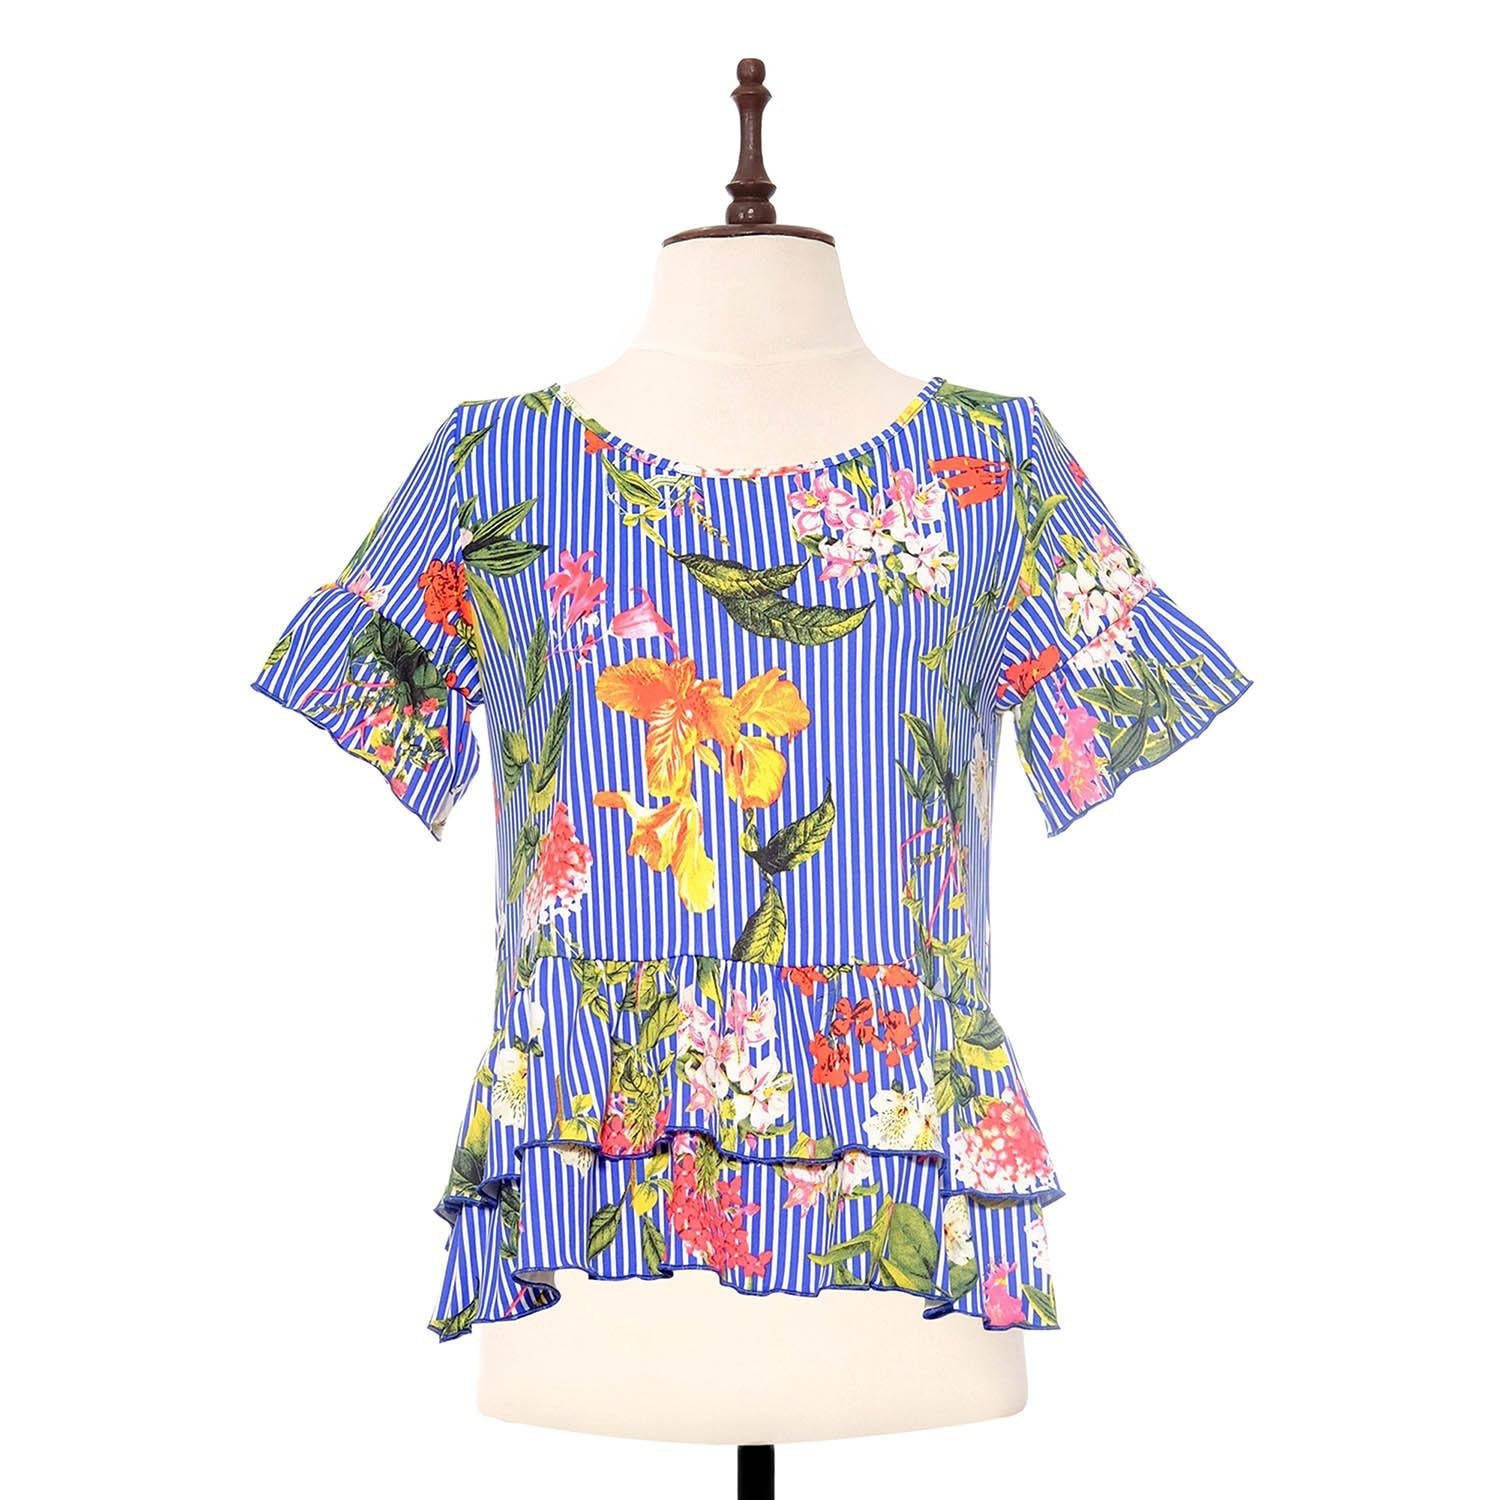 BLACK SHEEP Tropical Printed Top w/ Wrapped Hem in Blue